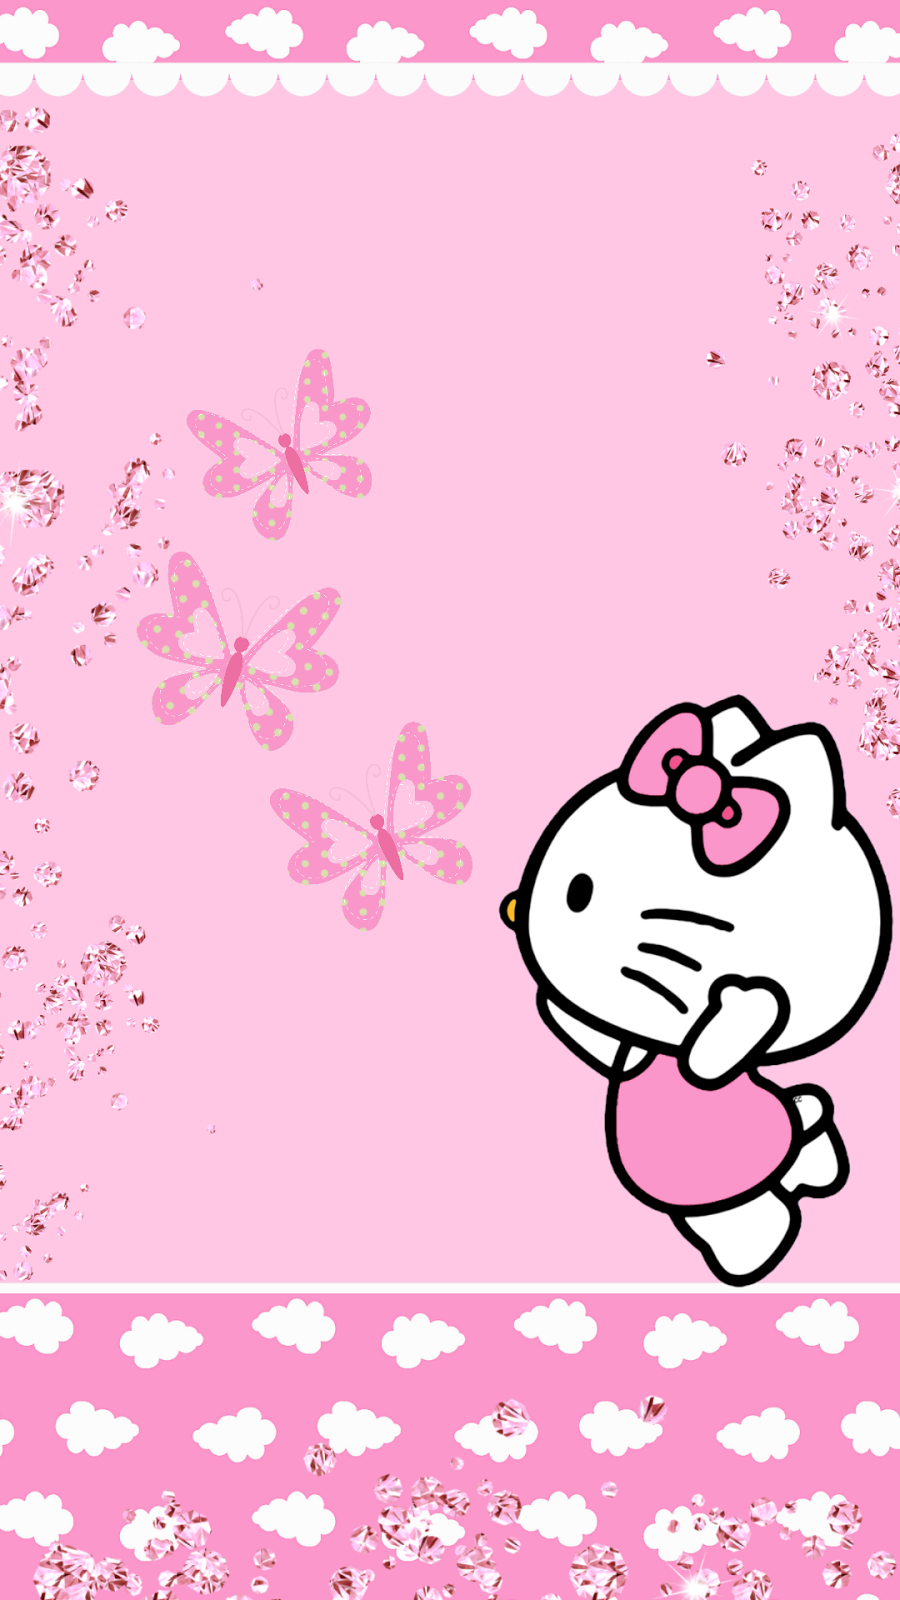 Top Wallpaper Hello Kitty Ipad - f1f6325babe861e7c0d5828ab914d0f0  Trends_279434.png